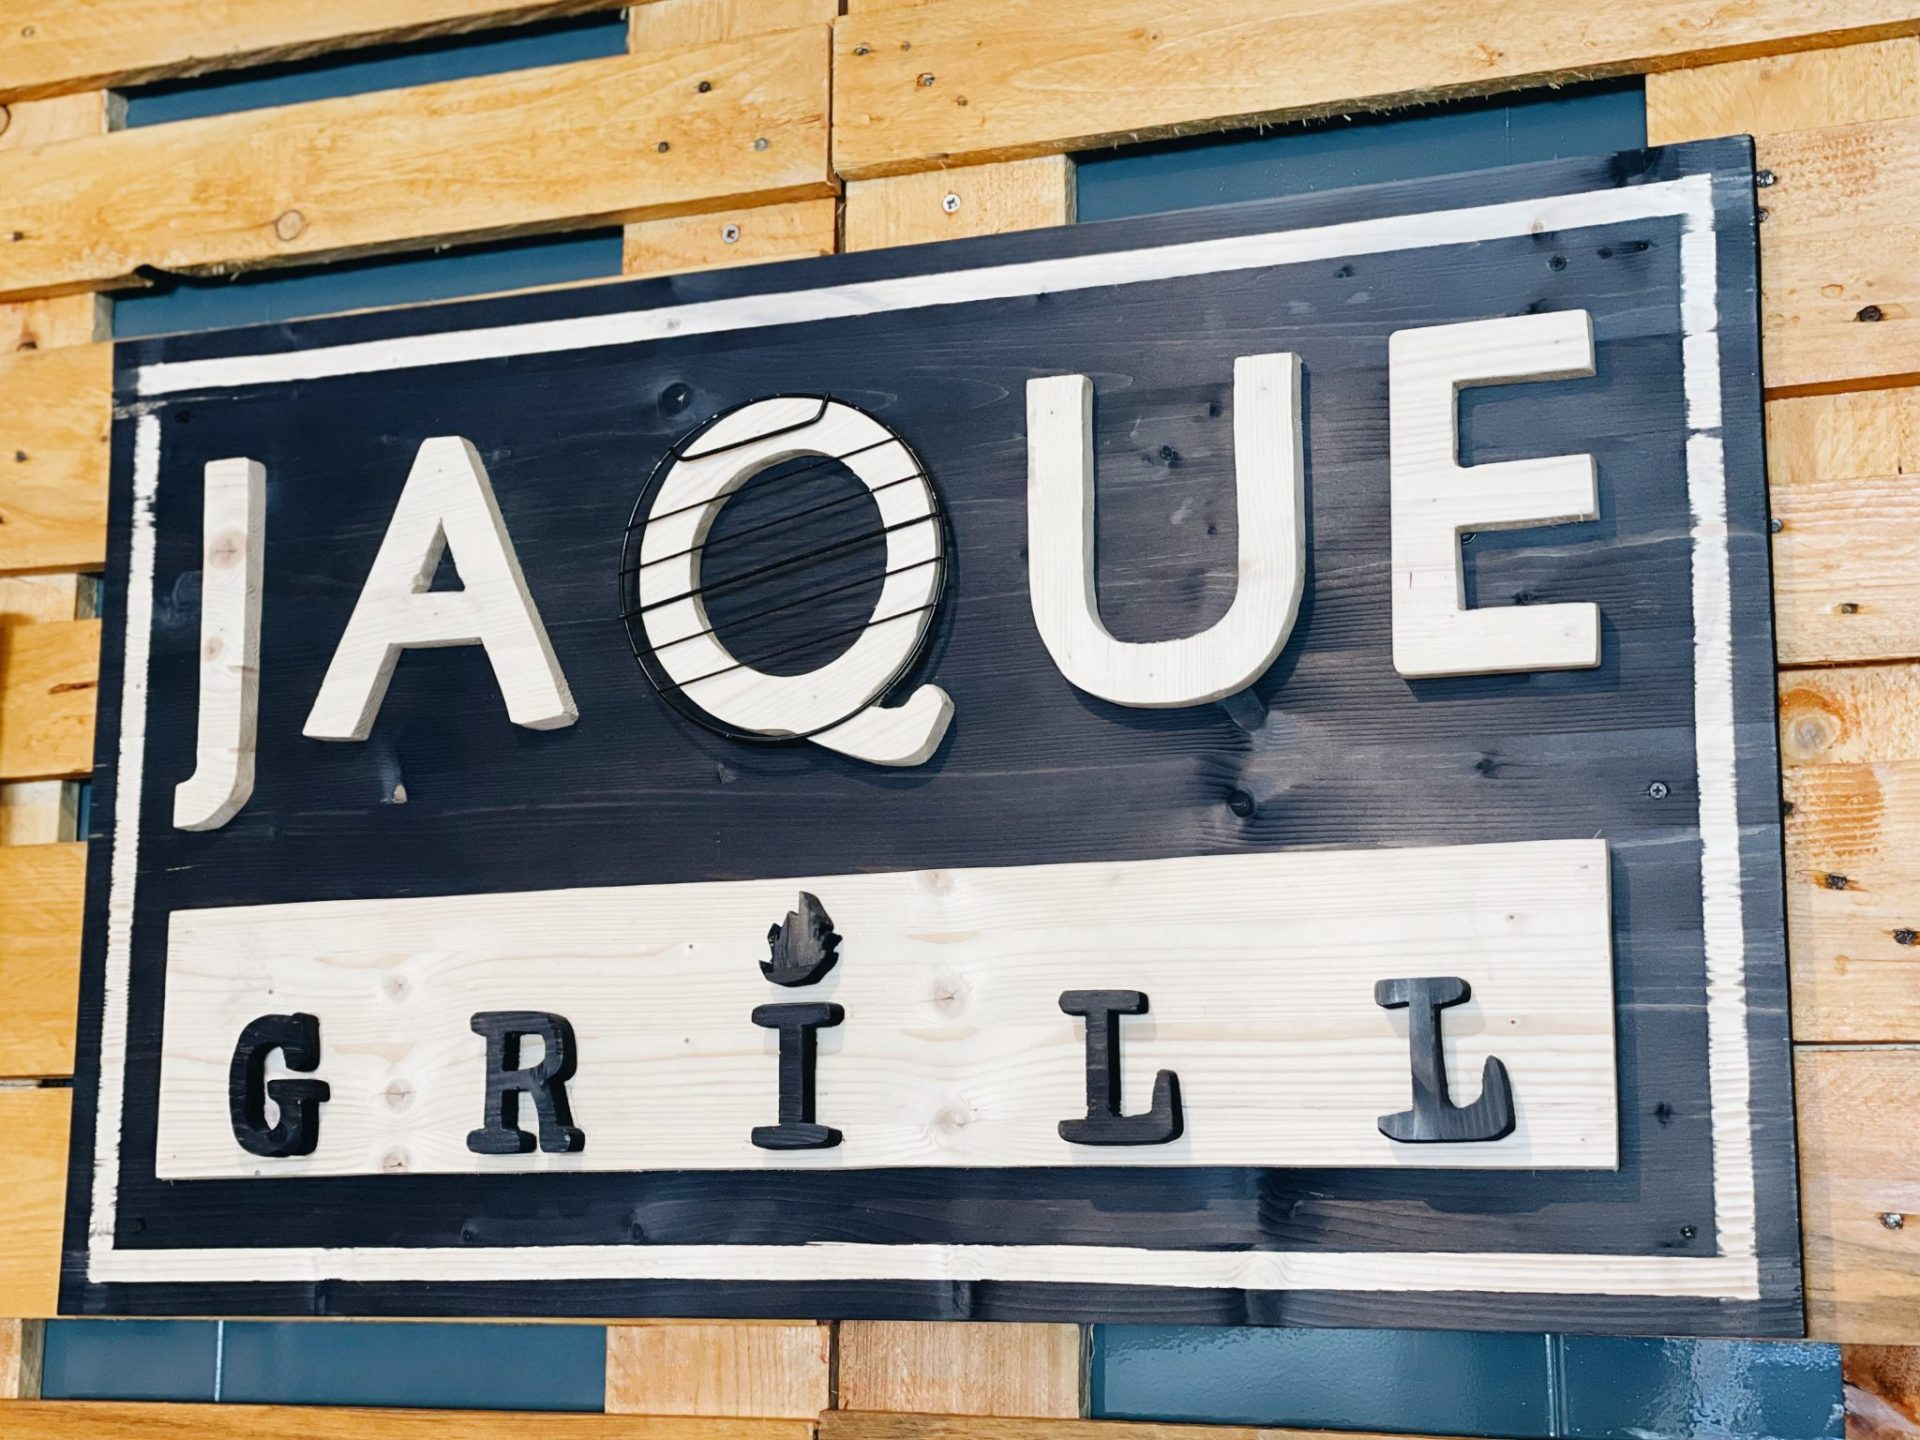 Jaque Grill